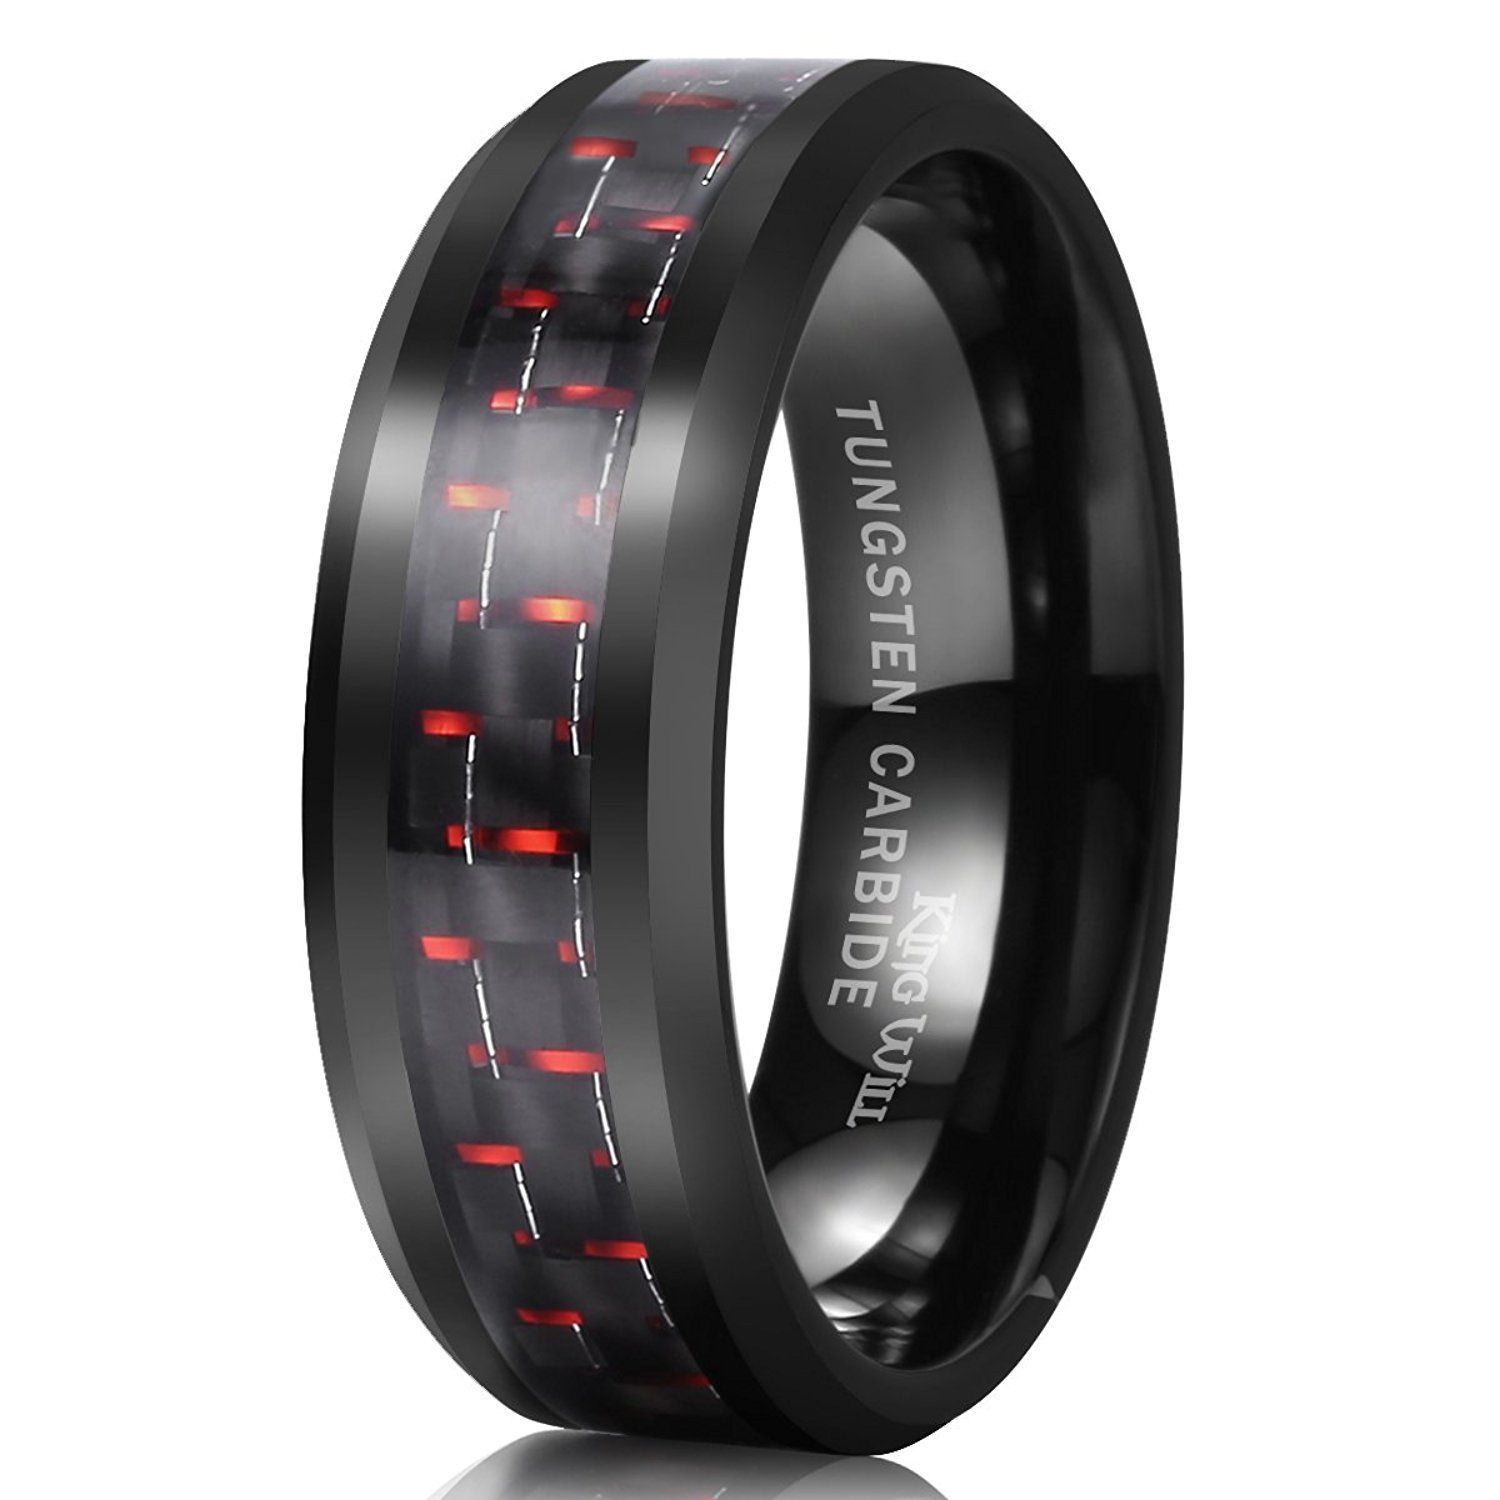 finish dp bands rings com wedding amazon band male high s ring polish tungsten matte men